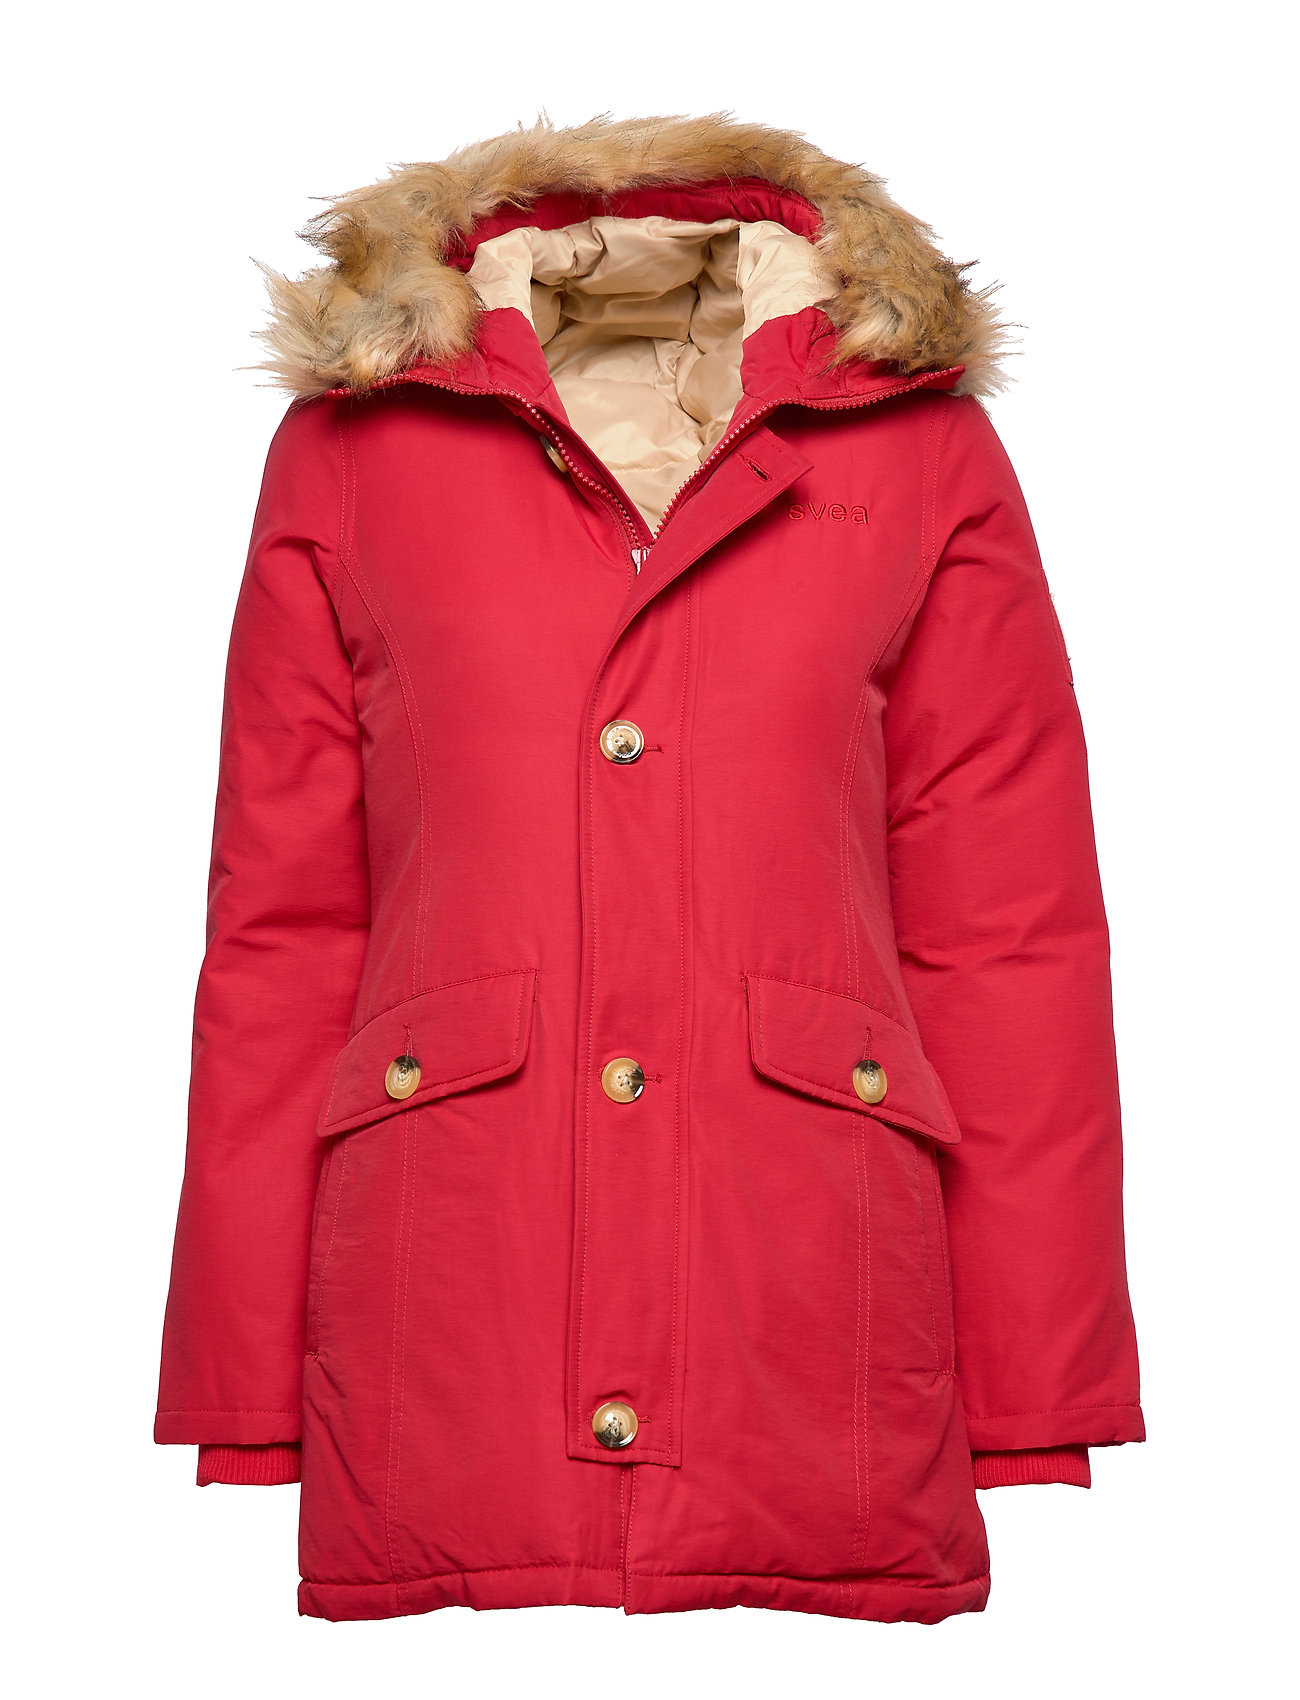 Svea Miss Smith Jacket - RED